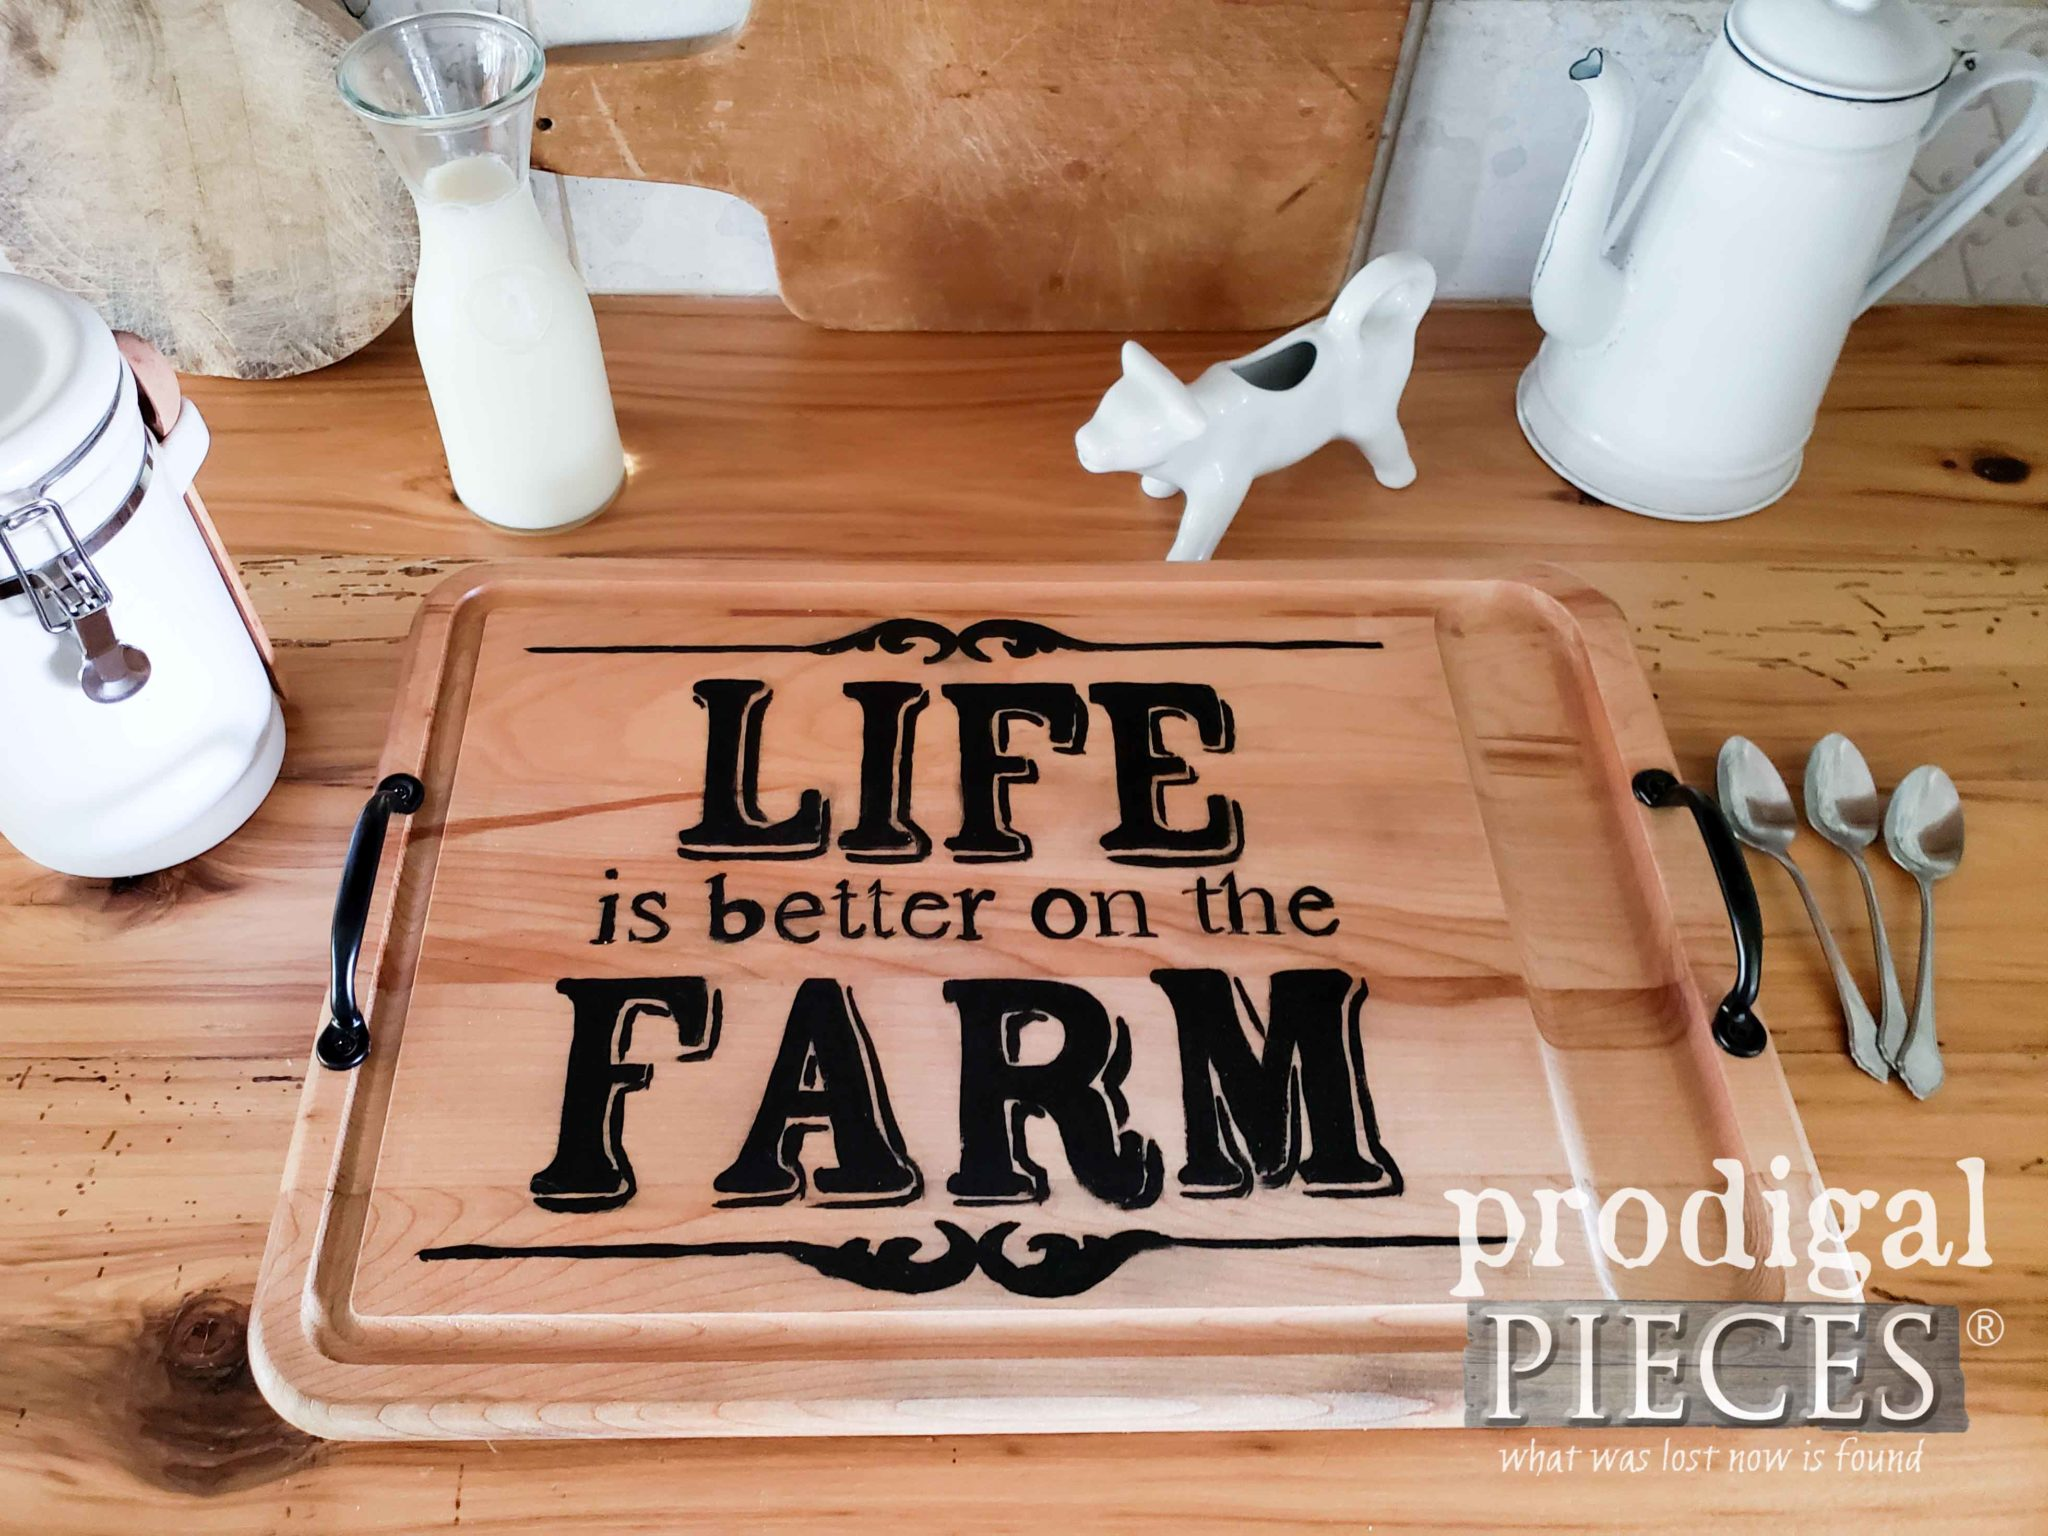 Rustic Farmhouse Style Footed Serving Tray made from a Repurposed Cutting Board by Larissa of Prodigal Pieces | prodigalpieces.com